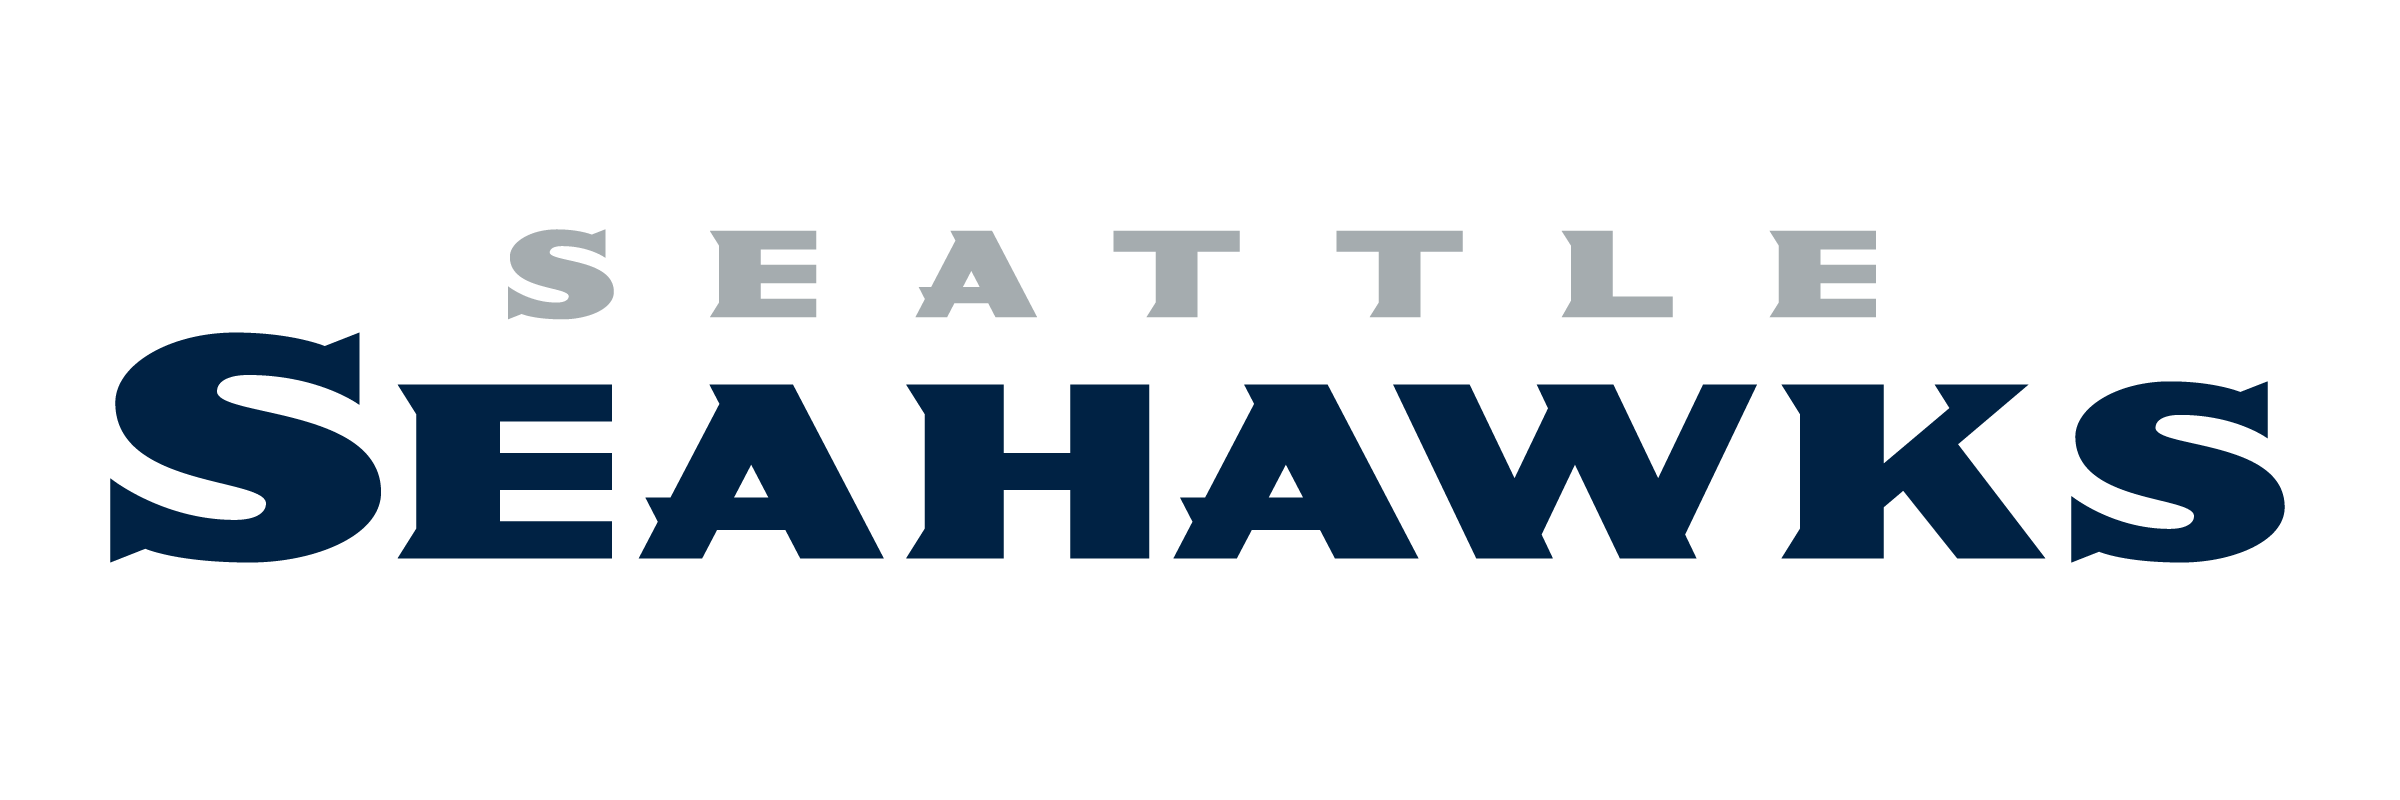 seattle seahawks logo png transparent svg vector freebie supply rh freebiesupply com